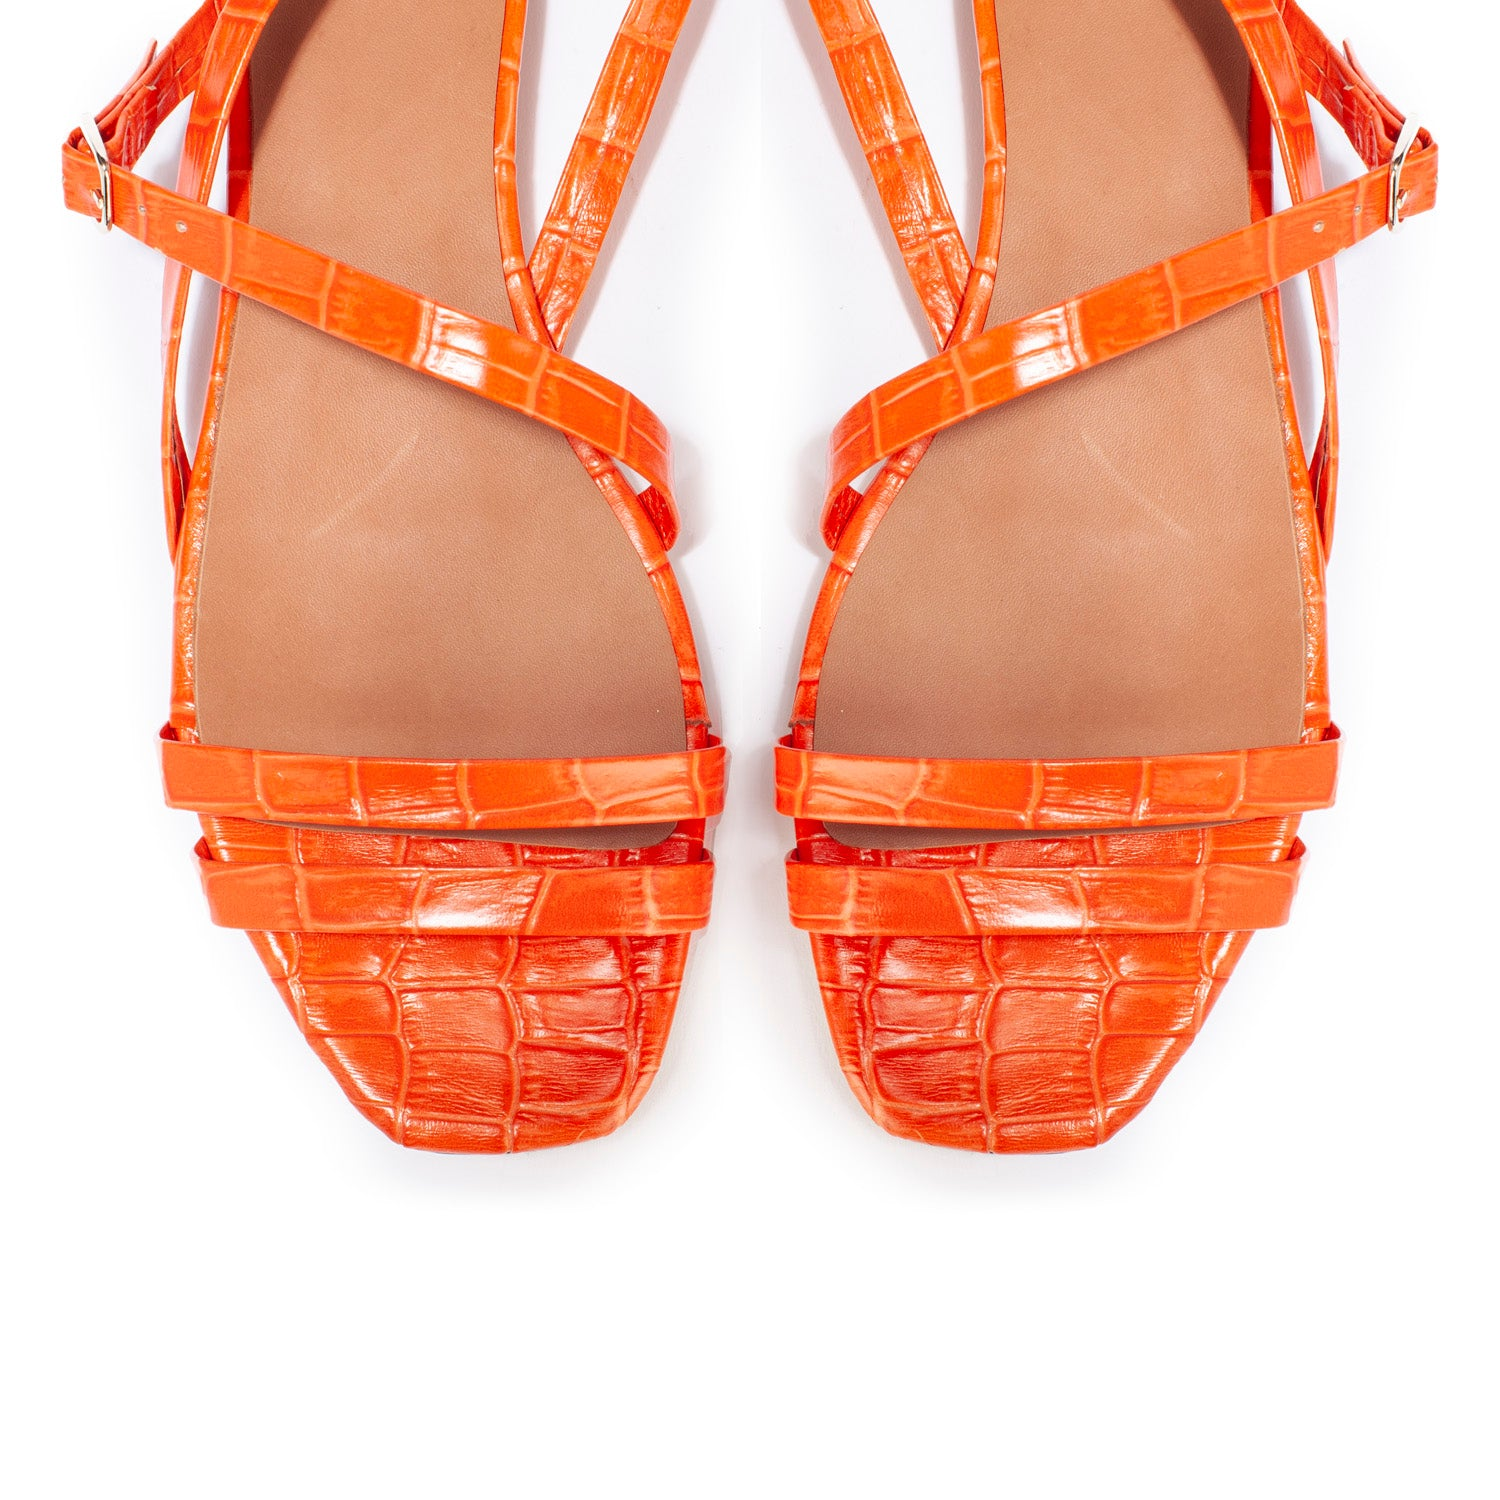 Sandales Agathe Croco Orange - Anaki Paris